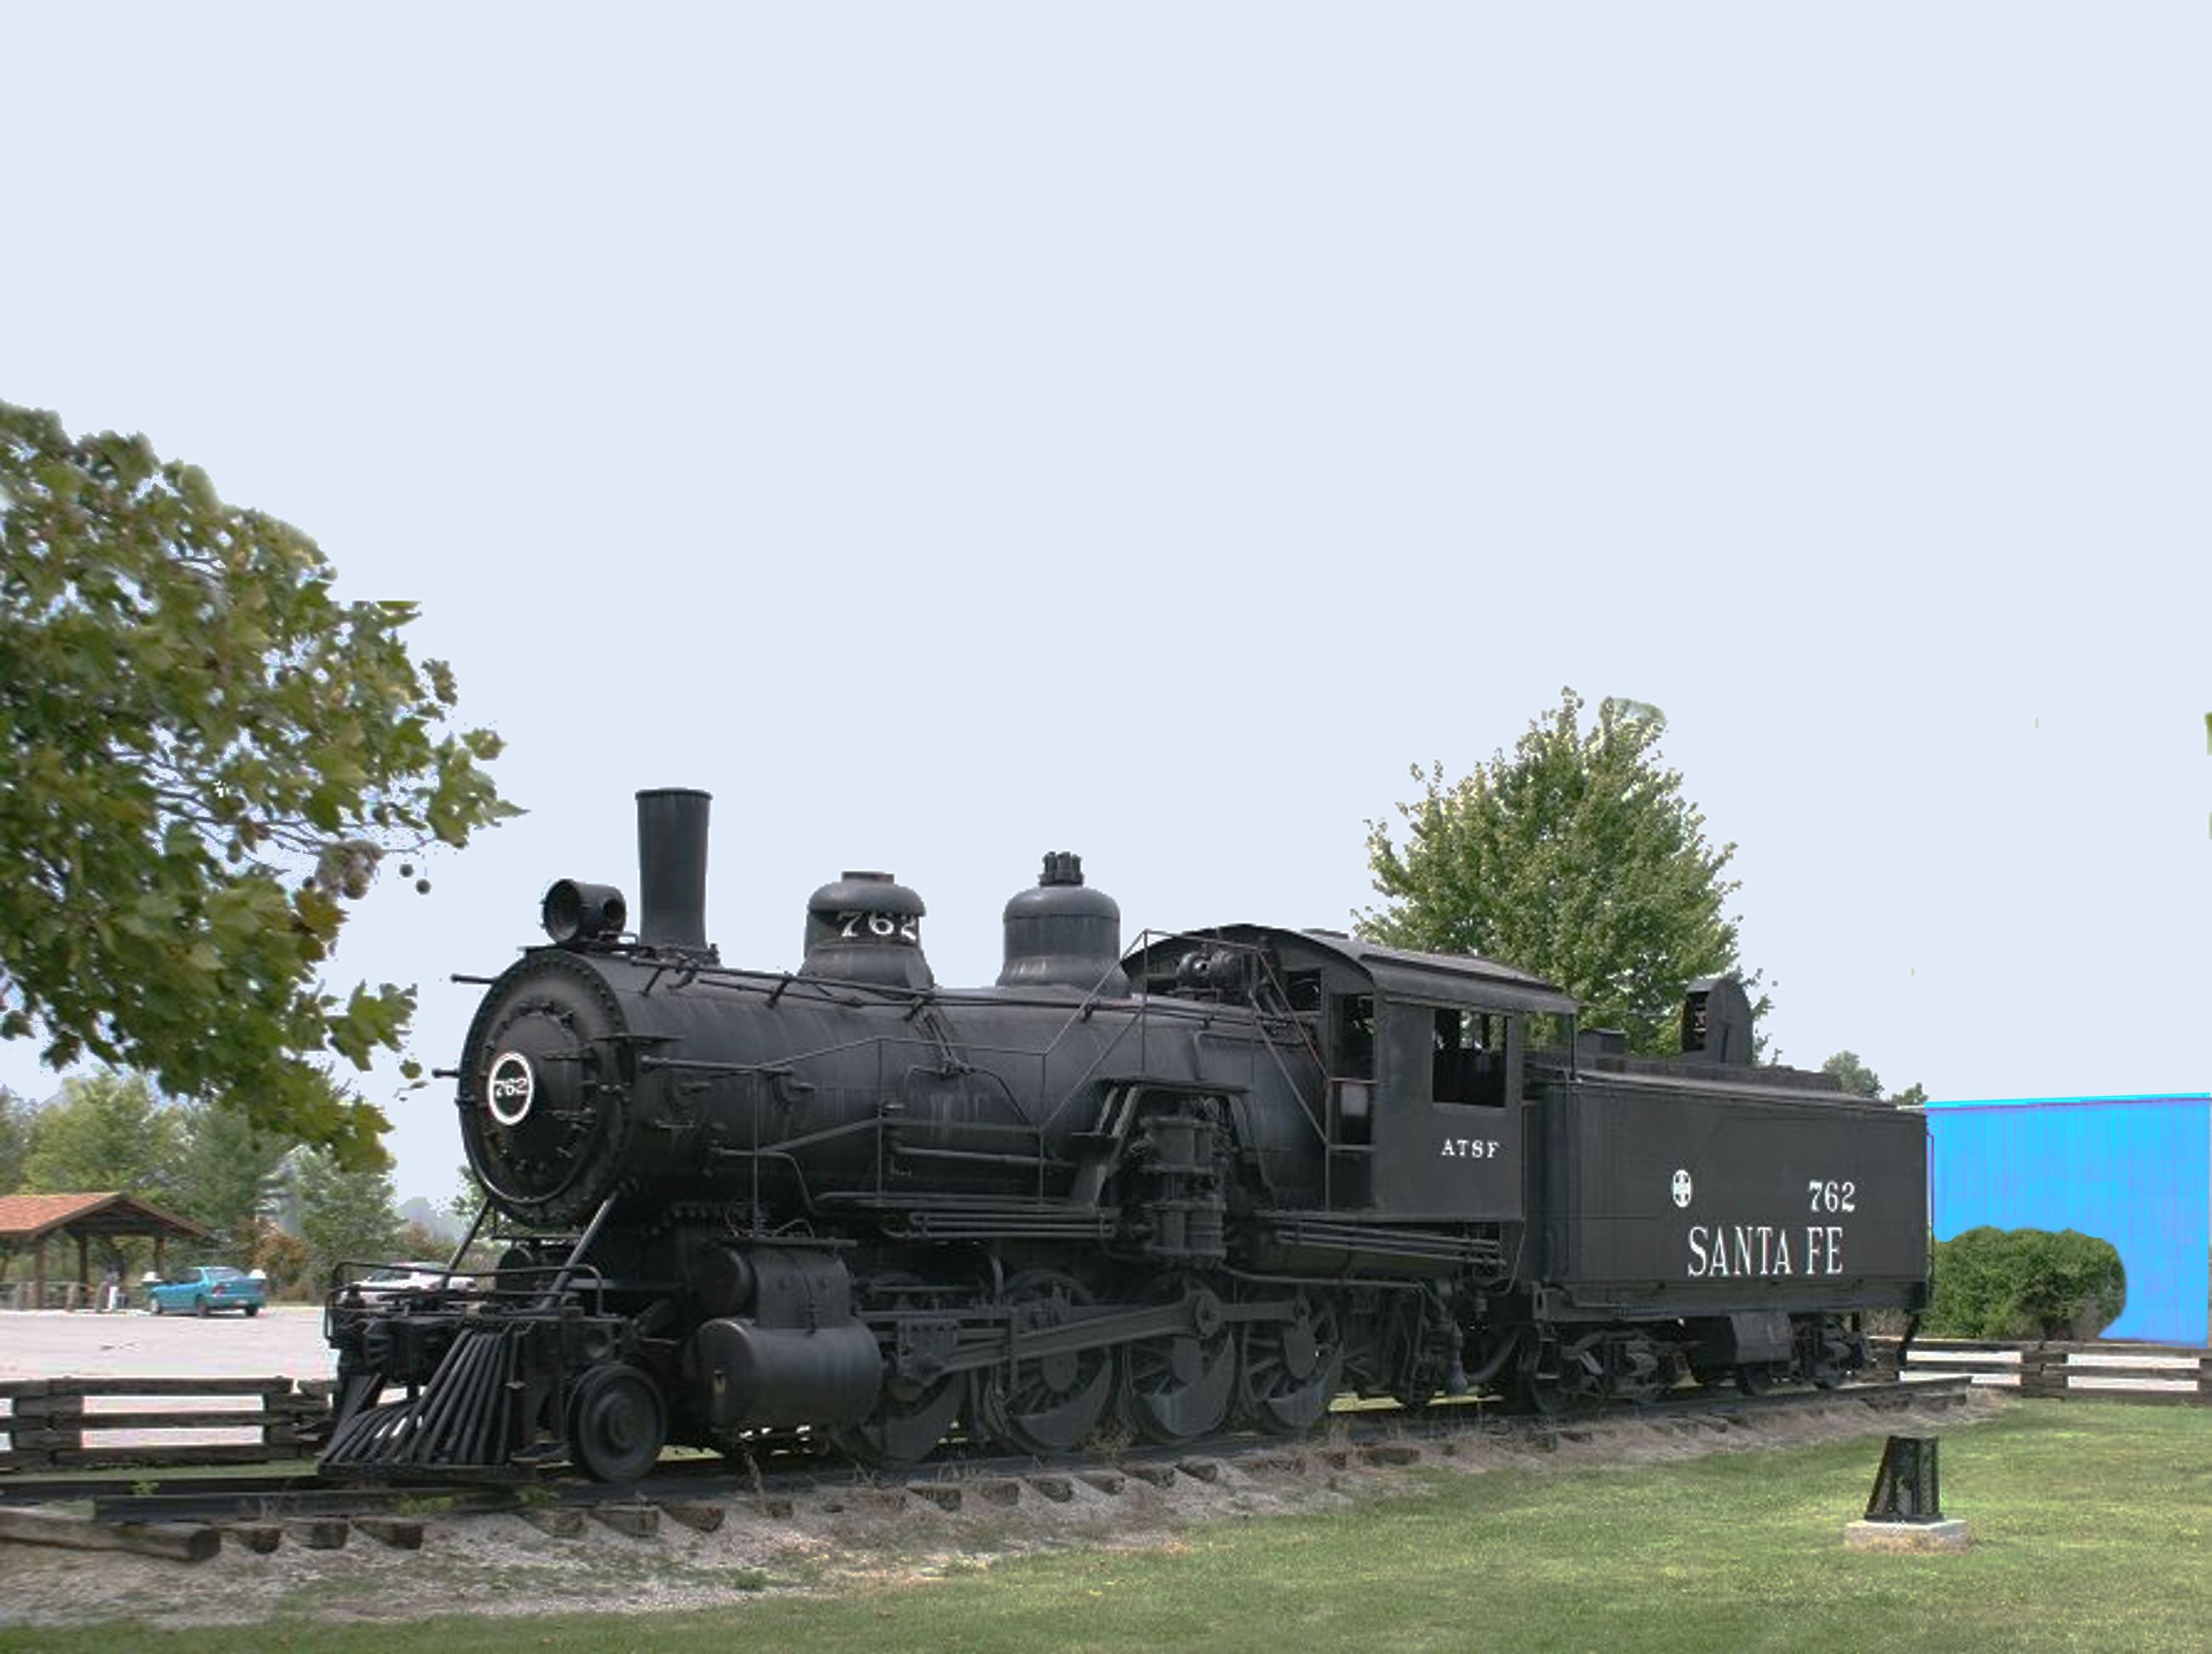 Santa Fe Train Engine